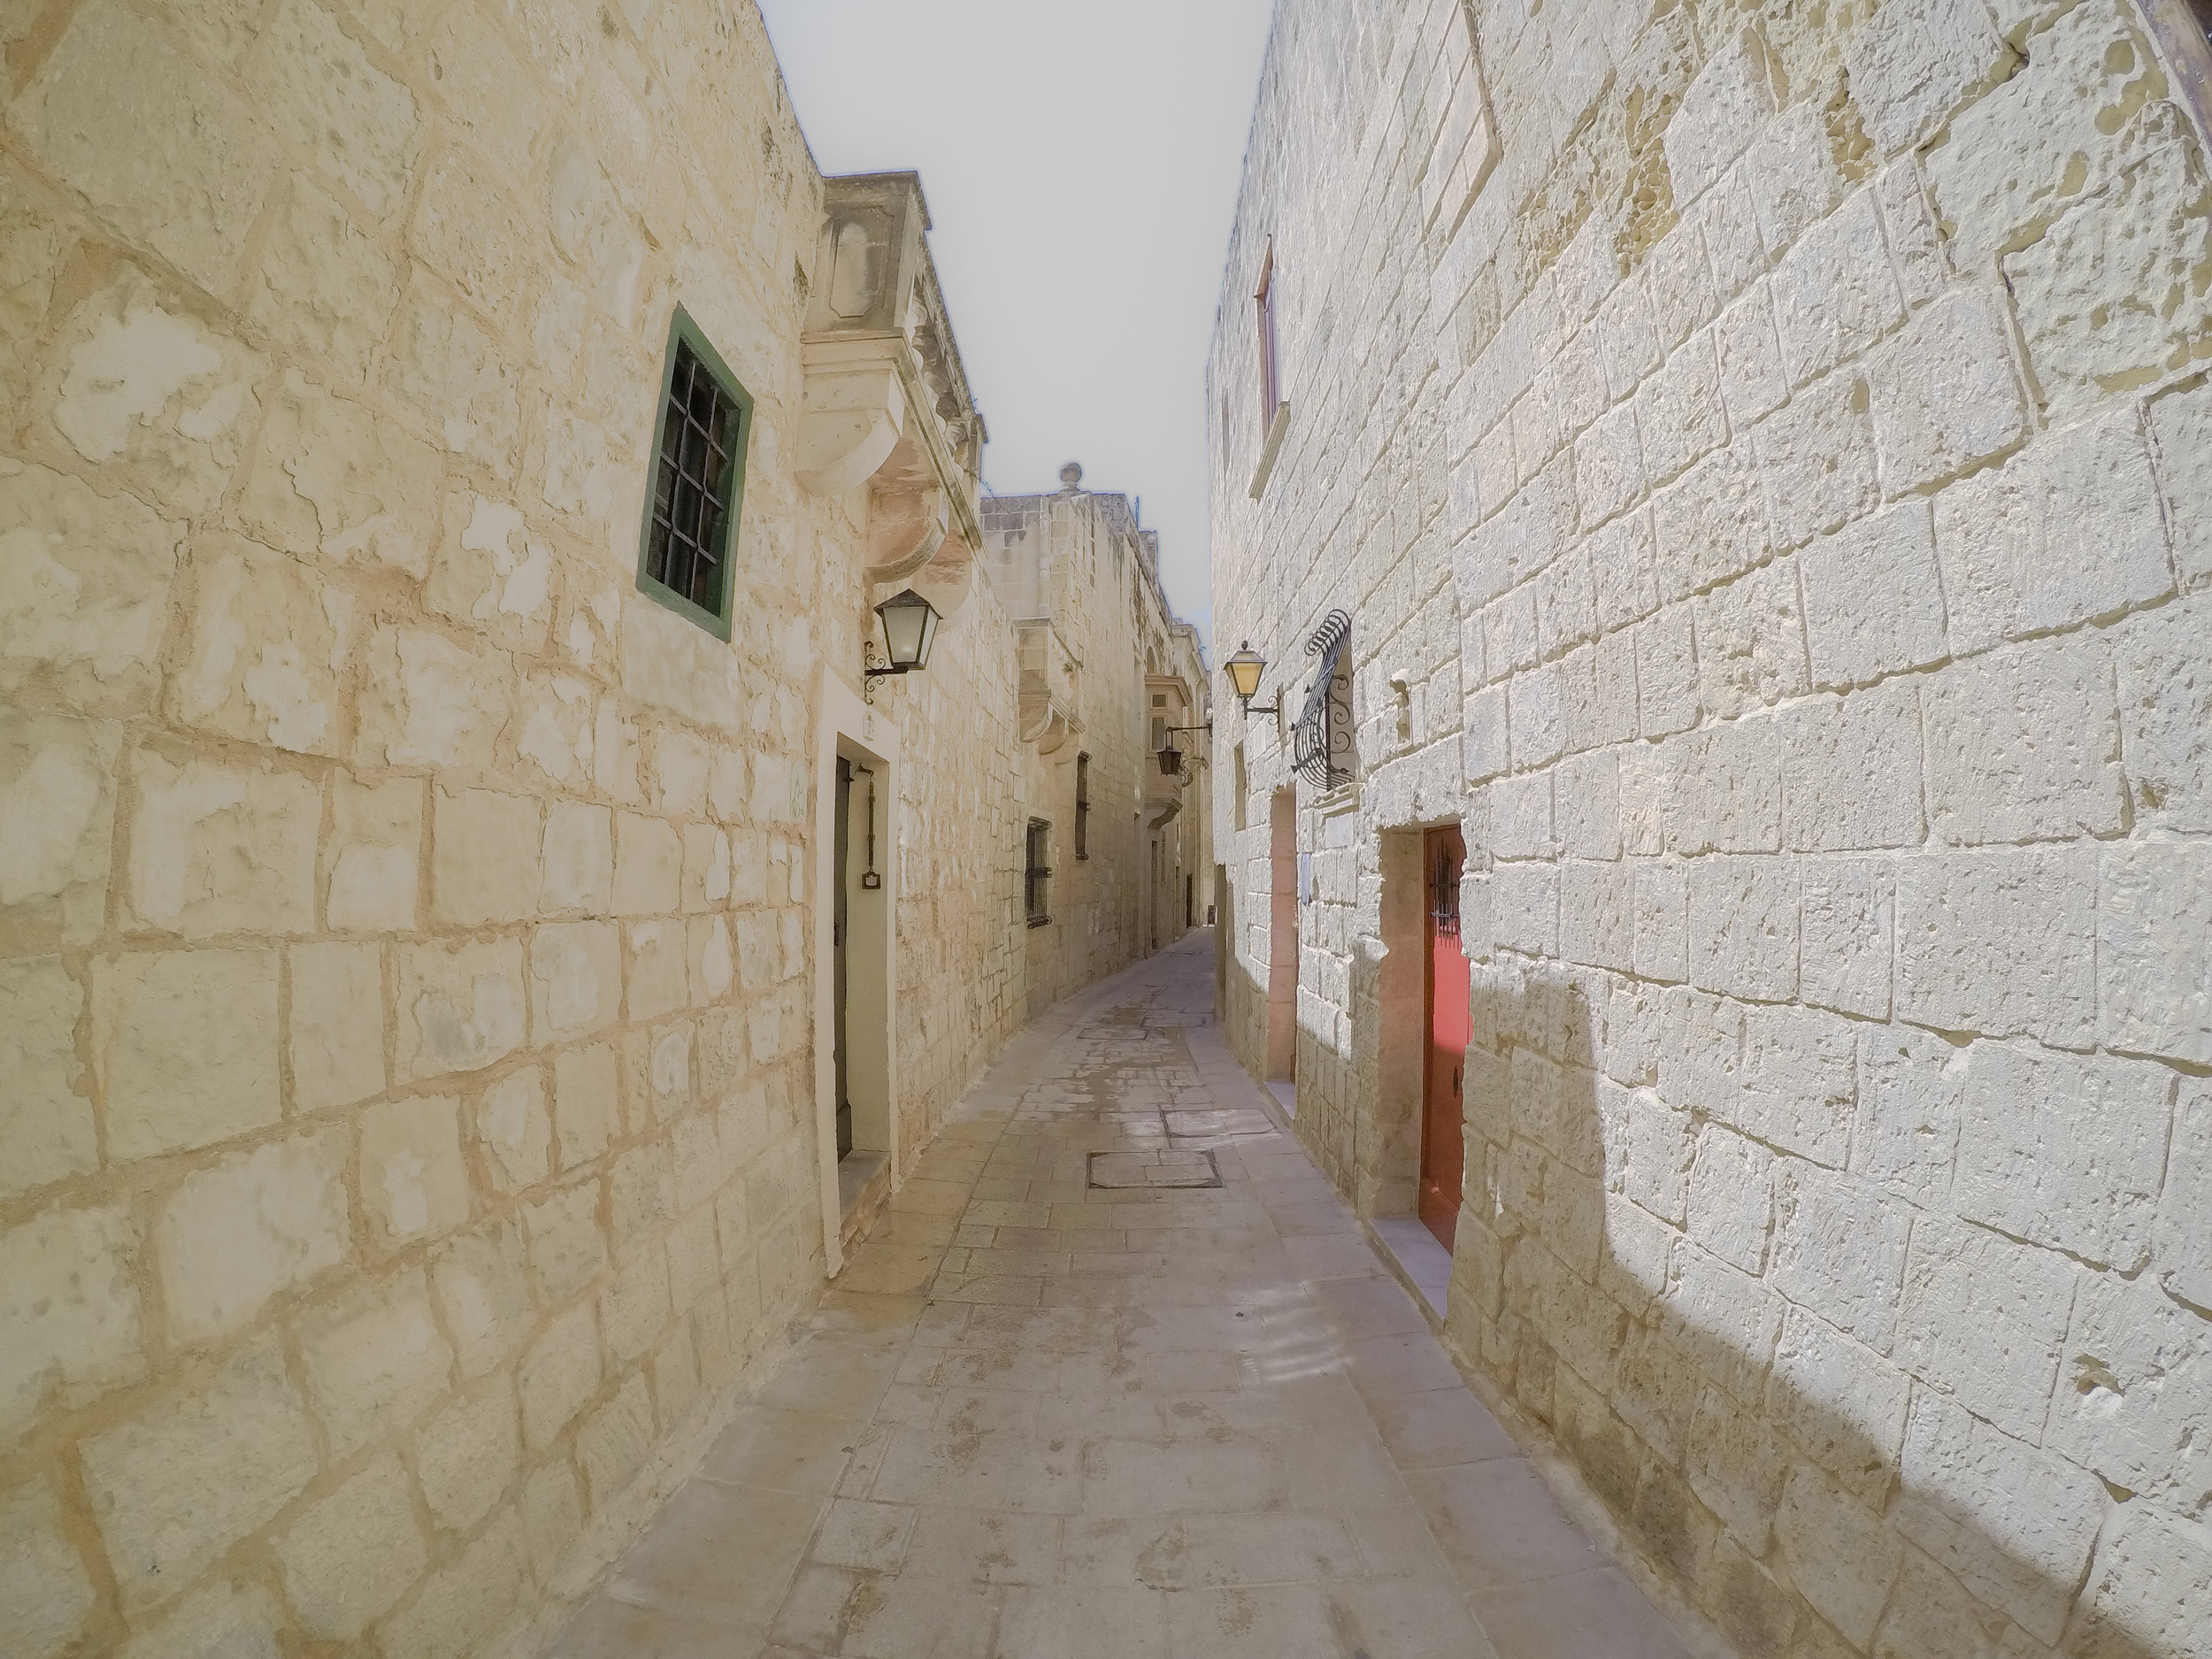 Medina | Streets of Malta | Mdina | - Thinking About Appreciation For Quality In Malta | Malta, Europe | DoLessGetMoreDone.com | - GoPro Minimal Travel Documentary Photography - search for Liveability | Sustainability